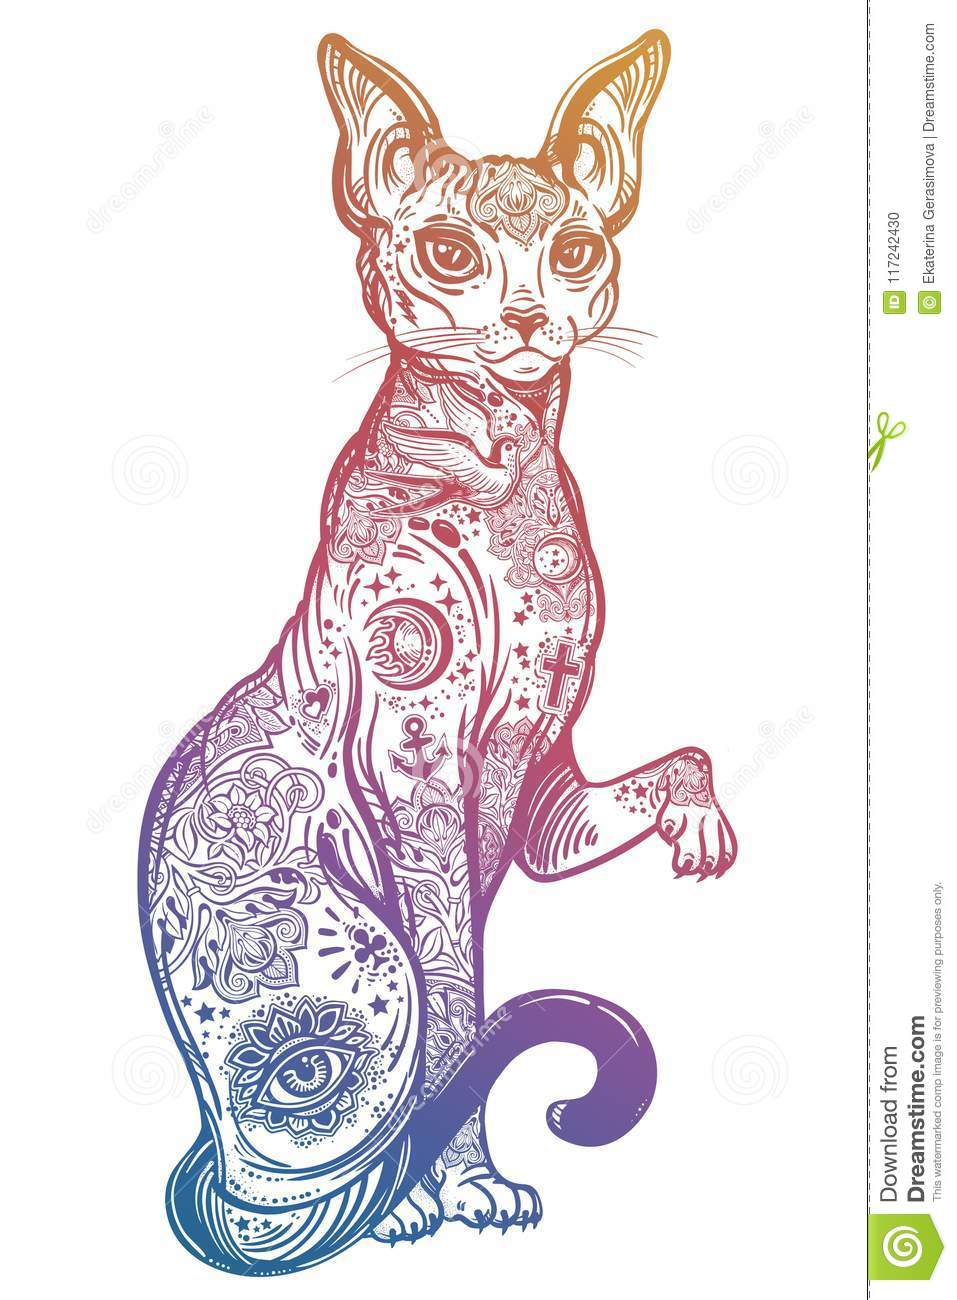 Vintage Style Cat With Body Flash Art Tattoos. Stock Vector ...